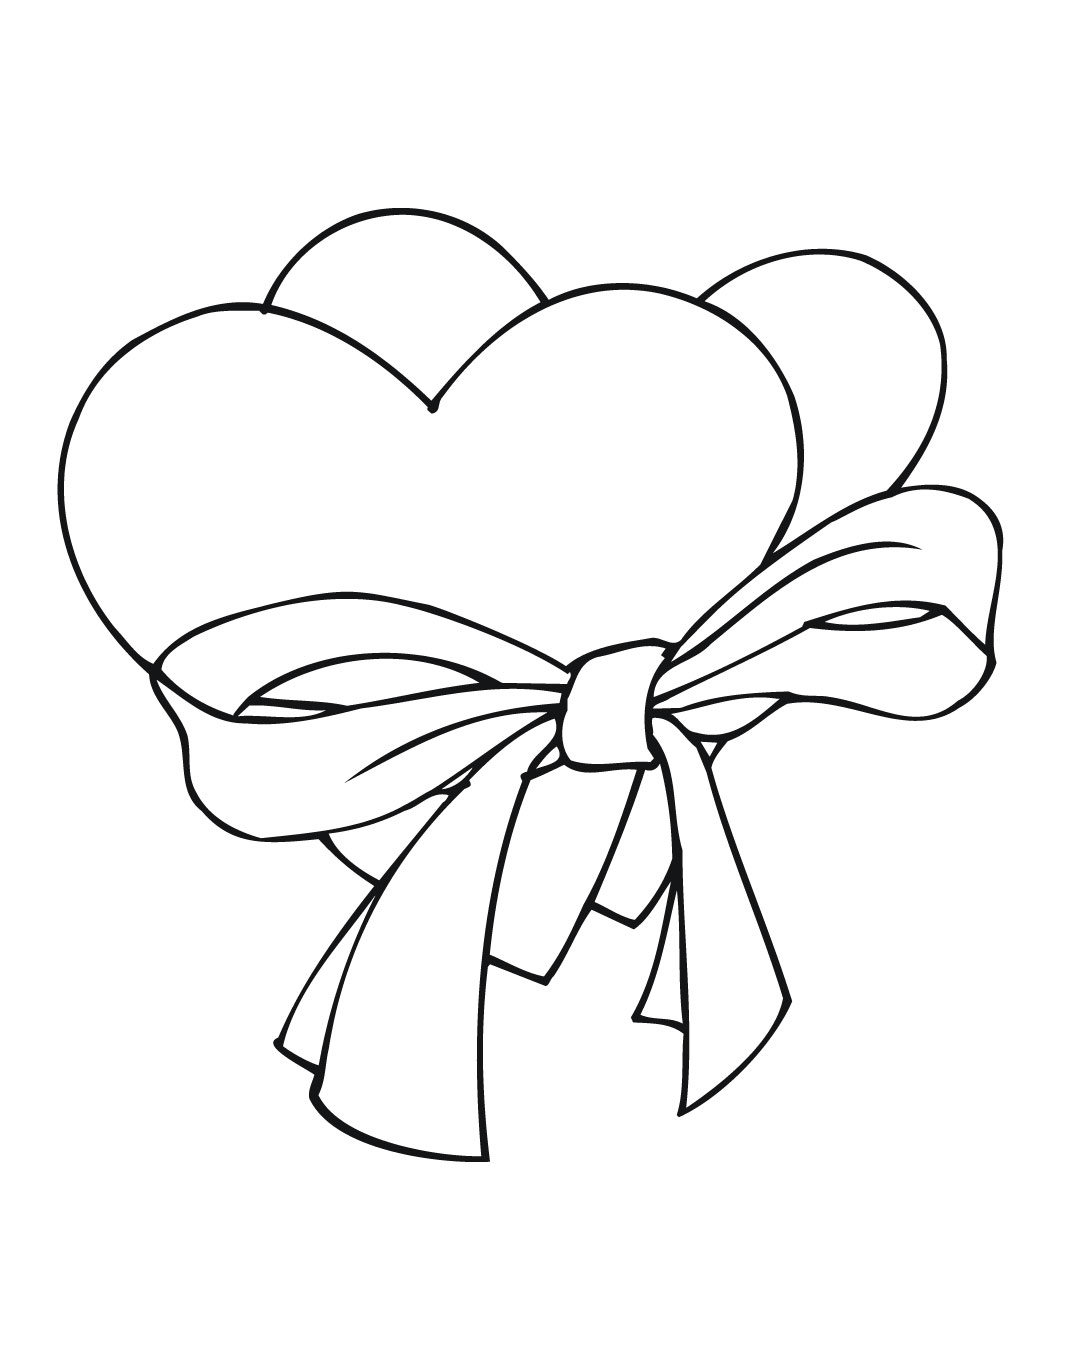 1080x1368 Heart And Roses Coloring Pages